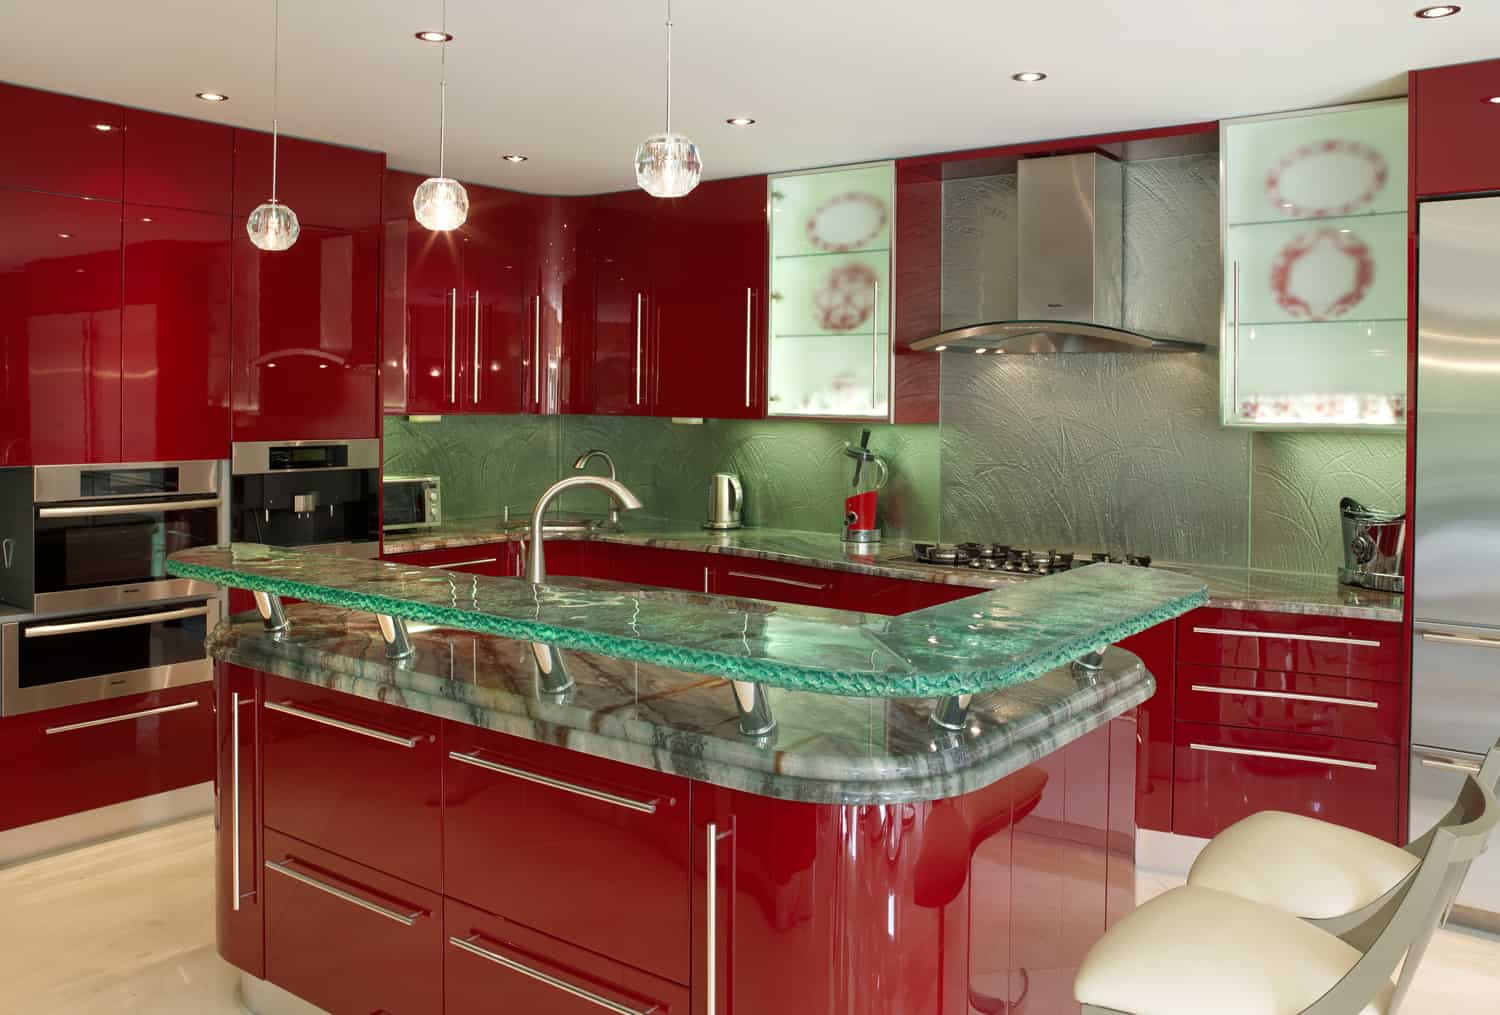 modern kitchen countertops from unusual materials kitchen countertops View in gallery modern countertops unusual material kitchen glass 3